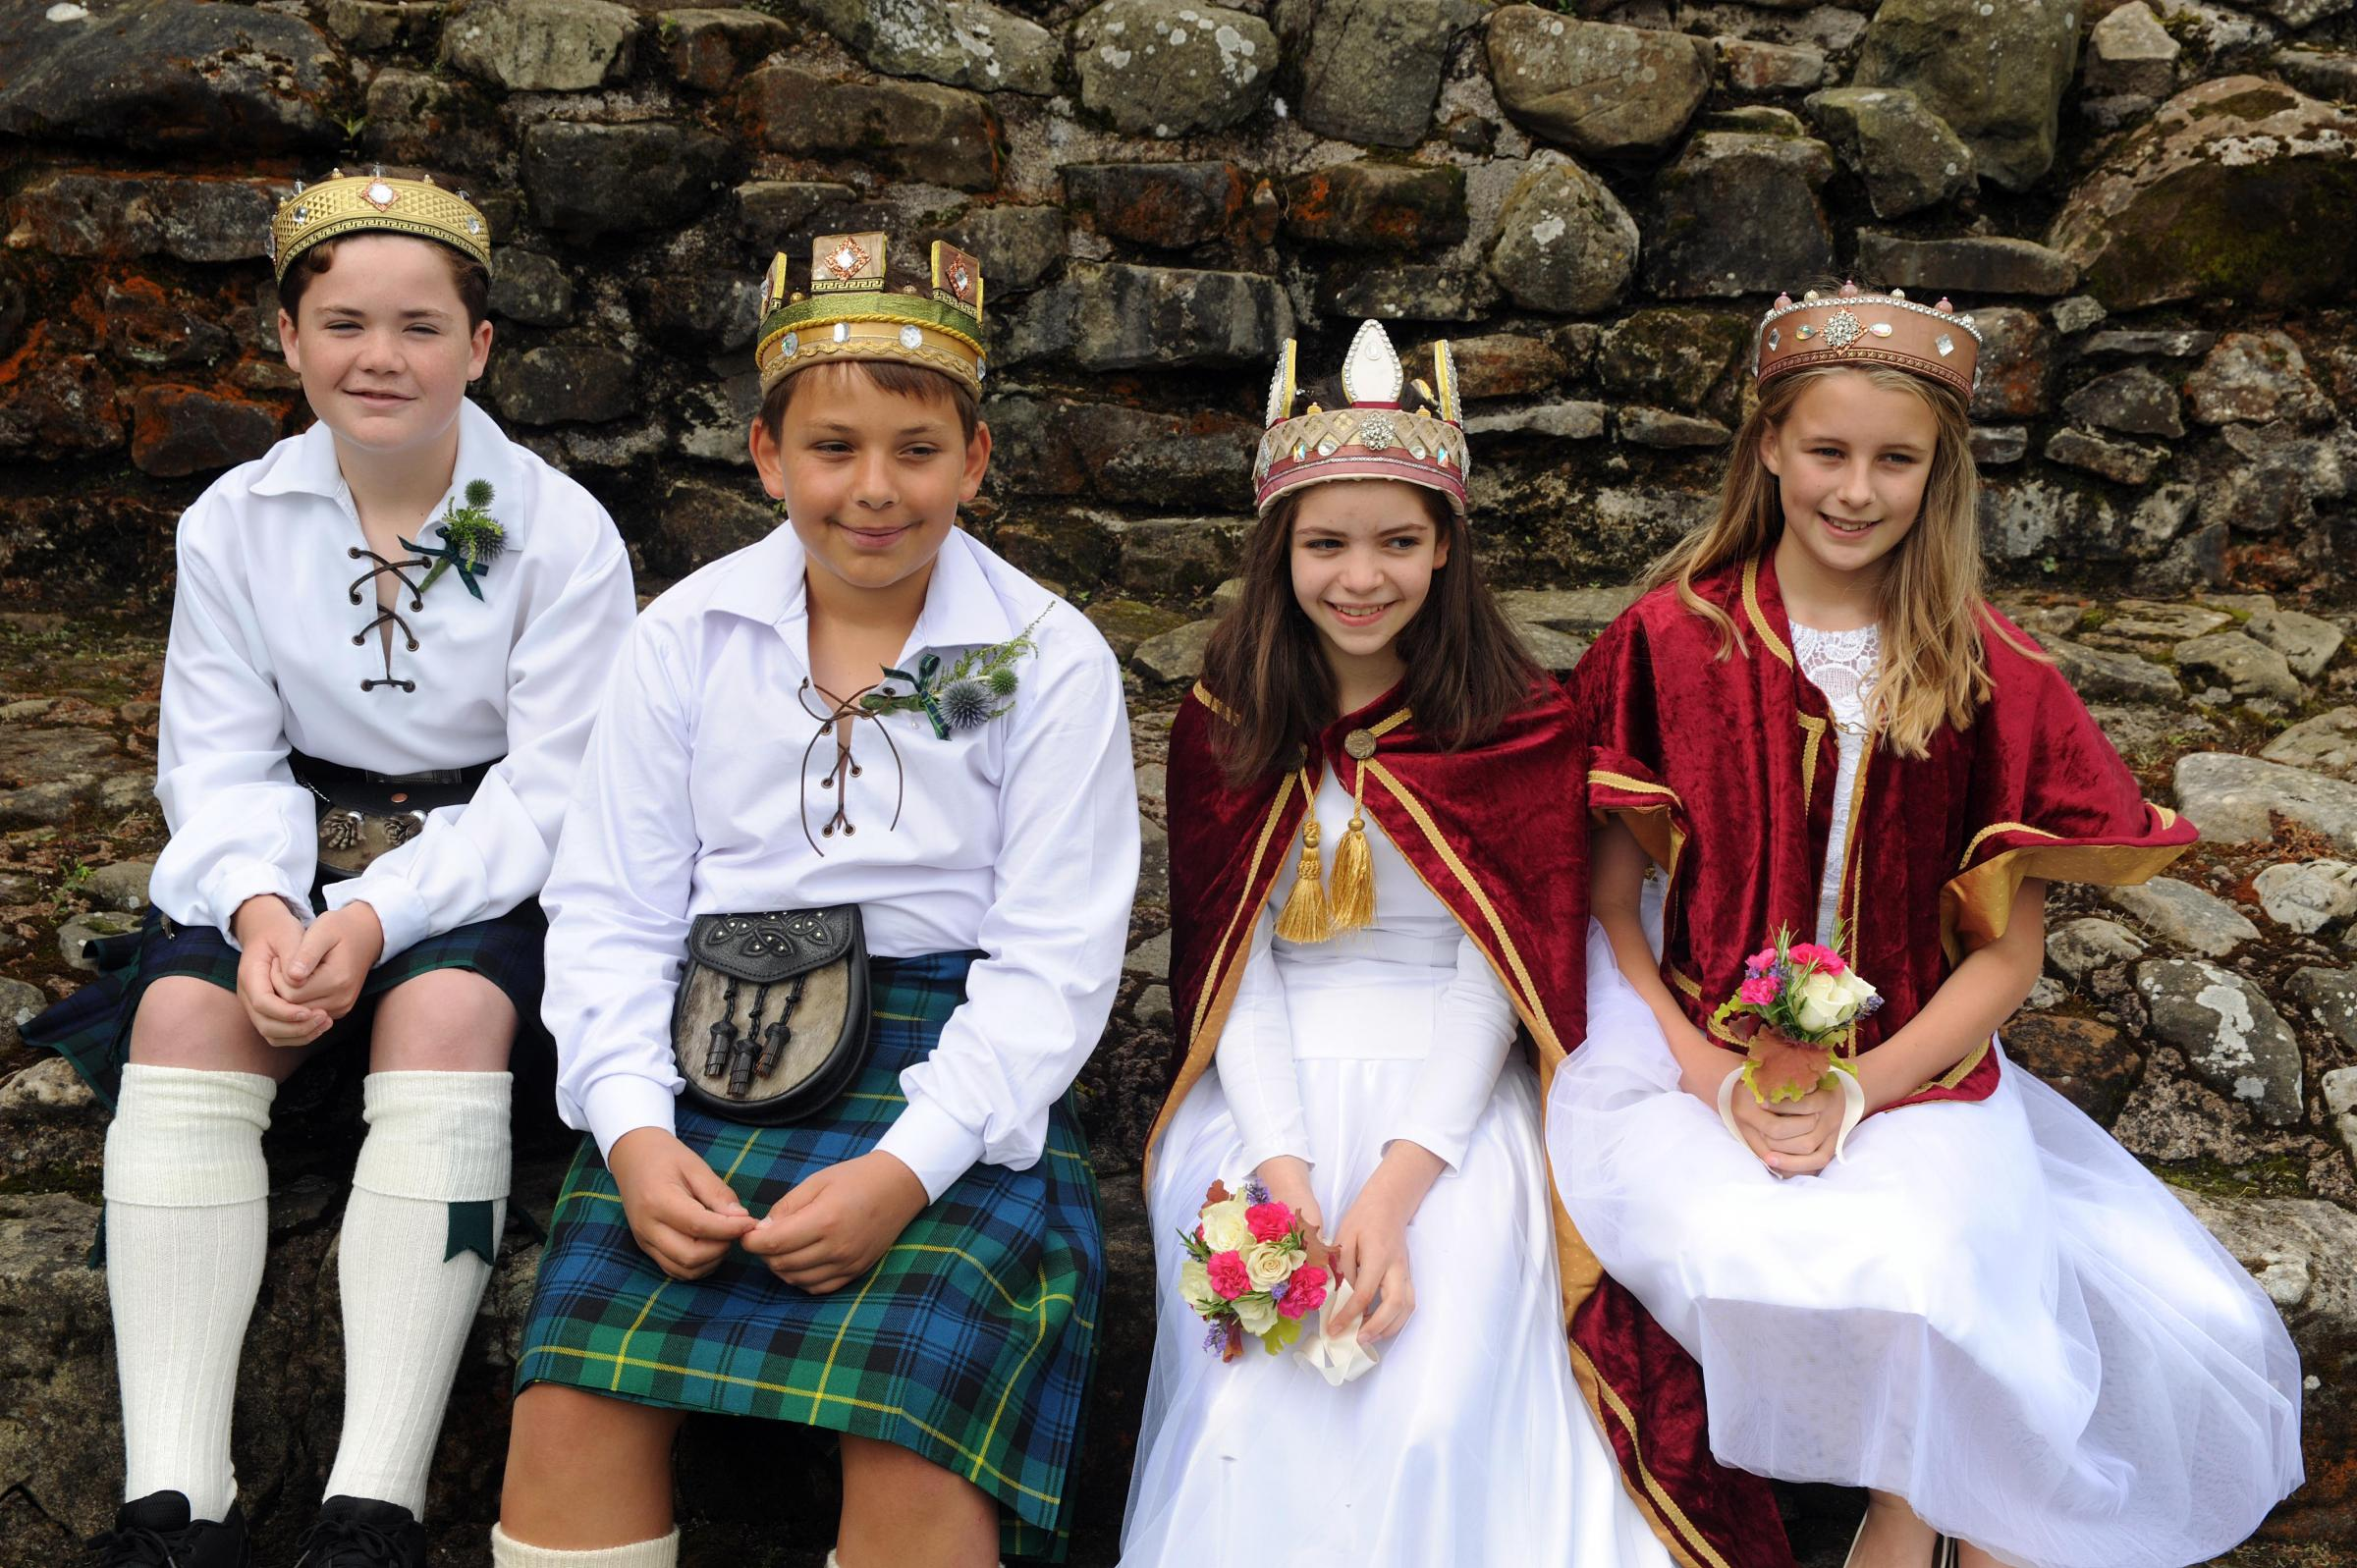 Aberdour festival 2017 day 1 King - Frazer Adams Queen - Czenge Adamik Male Attendent - Hamish Brown Female Attendent - Lucy Anderson (c) David Wardle